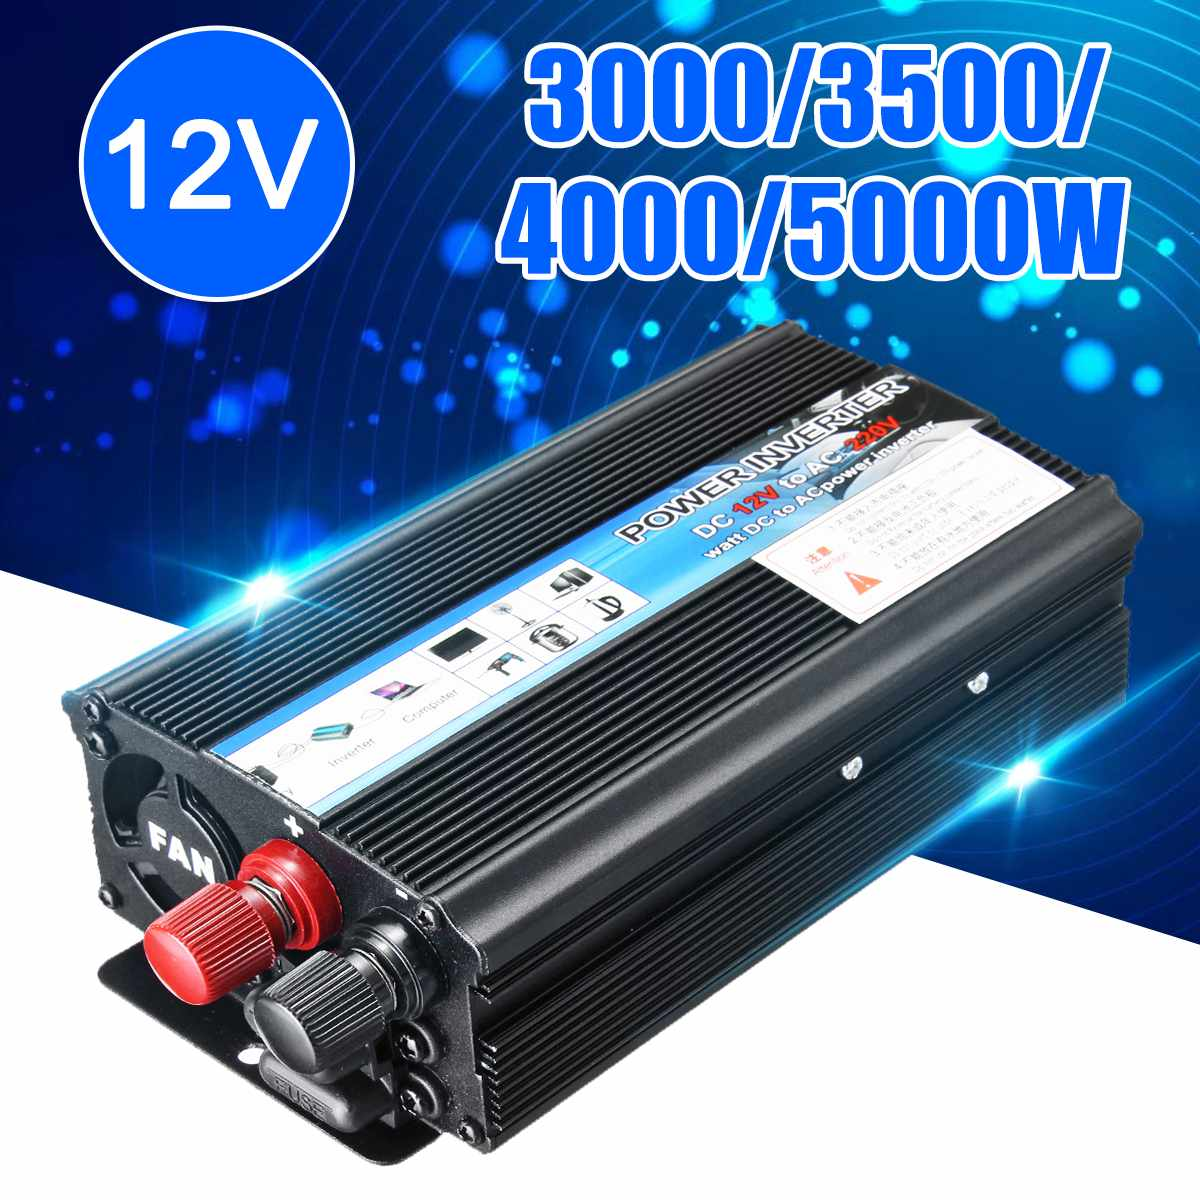 Inverter Wave Car-Power 5000W-3000 Watt Portable 220 Sine To 12V DC AC AC